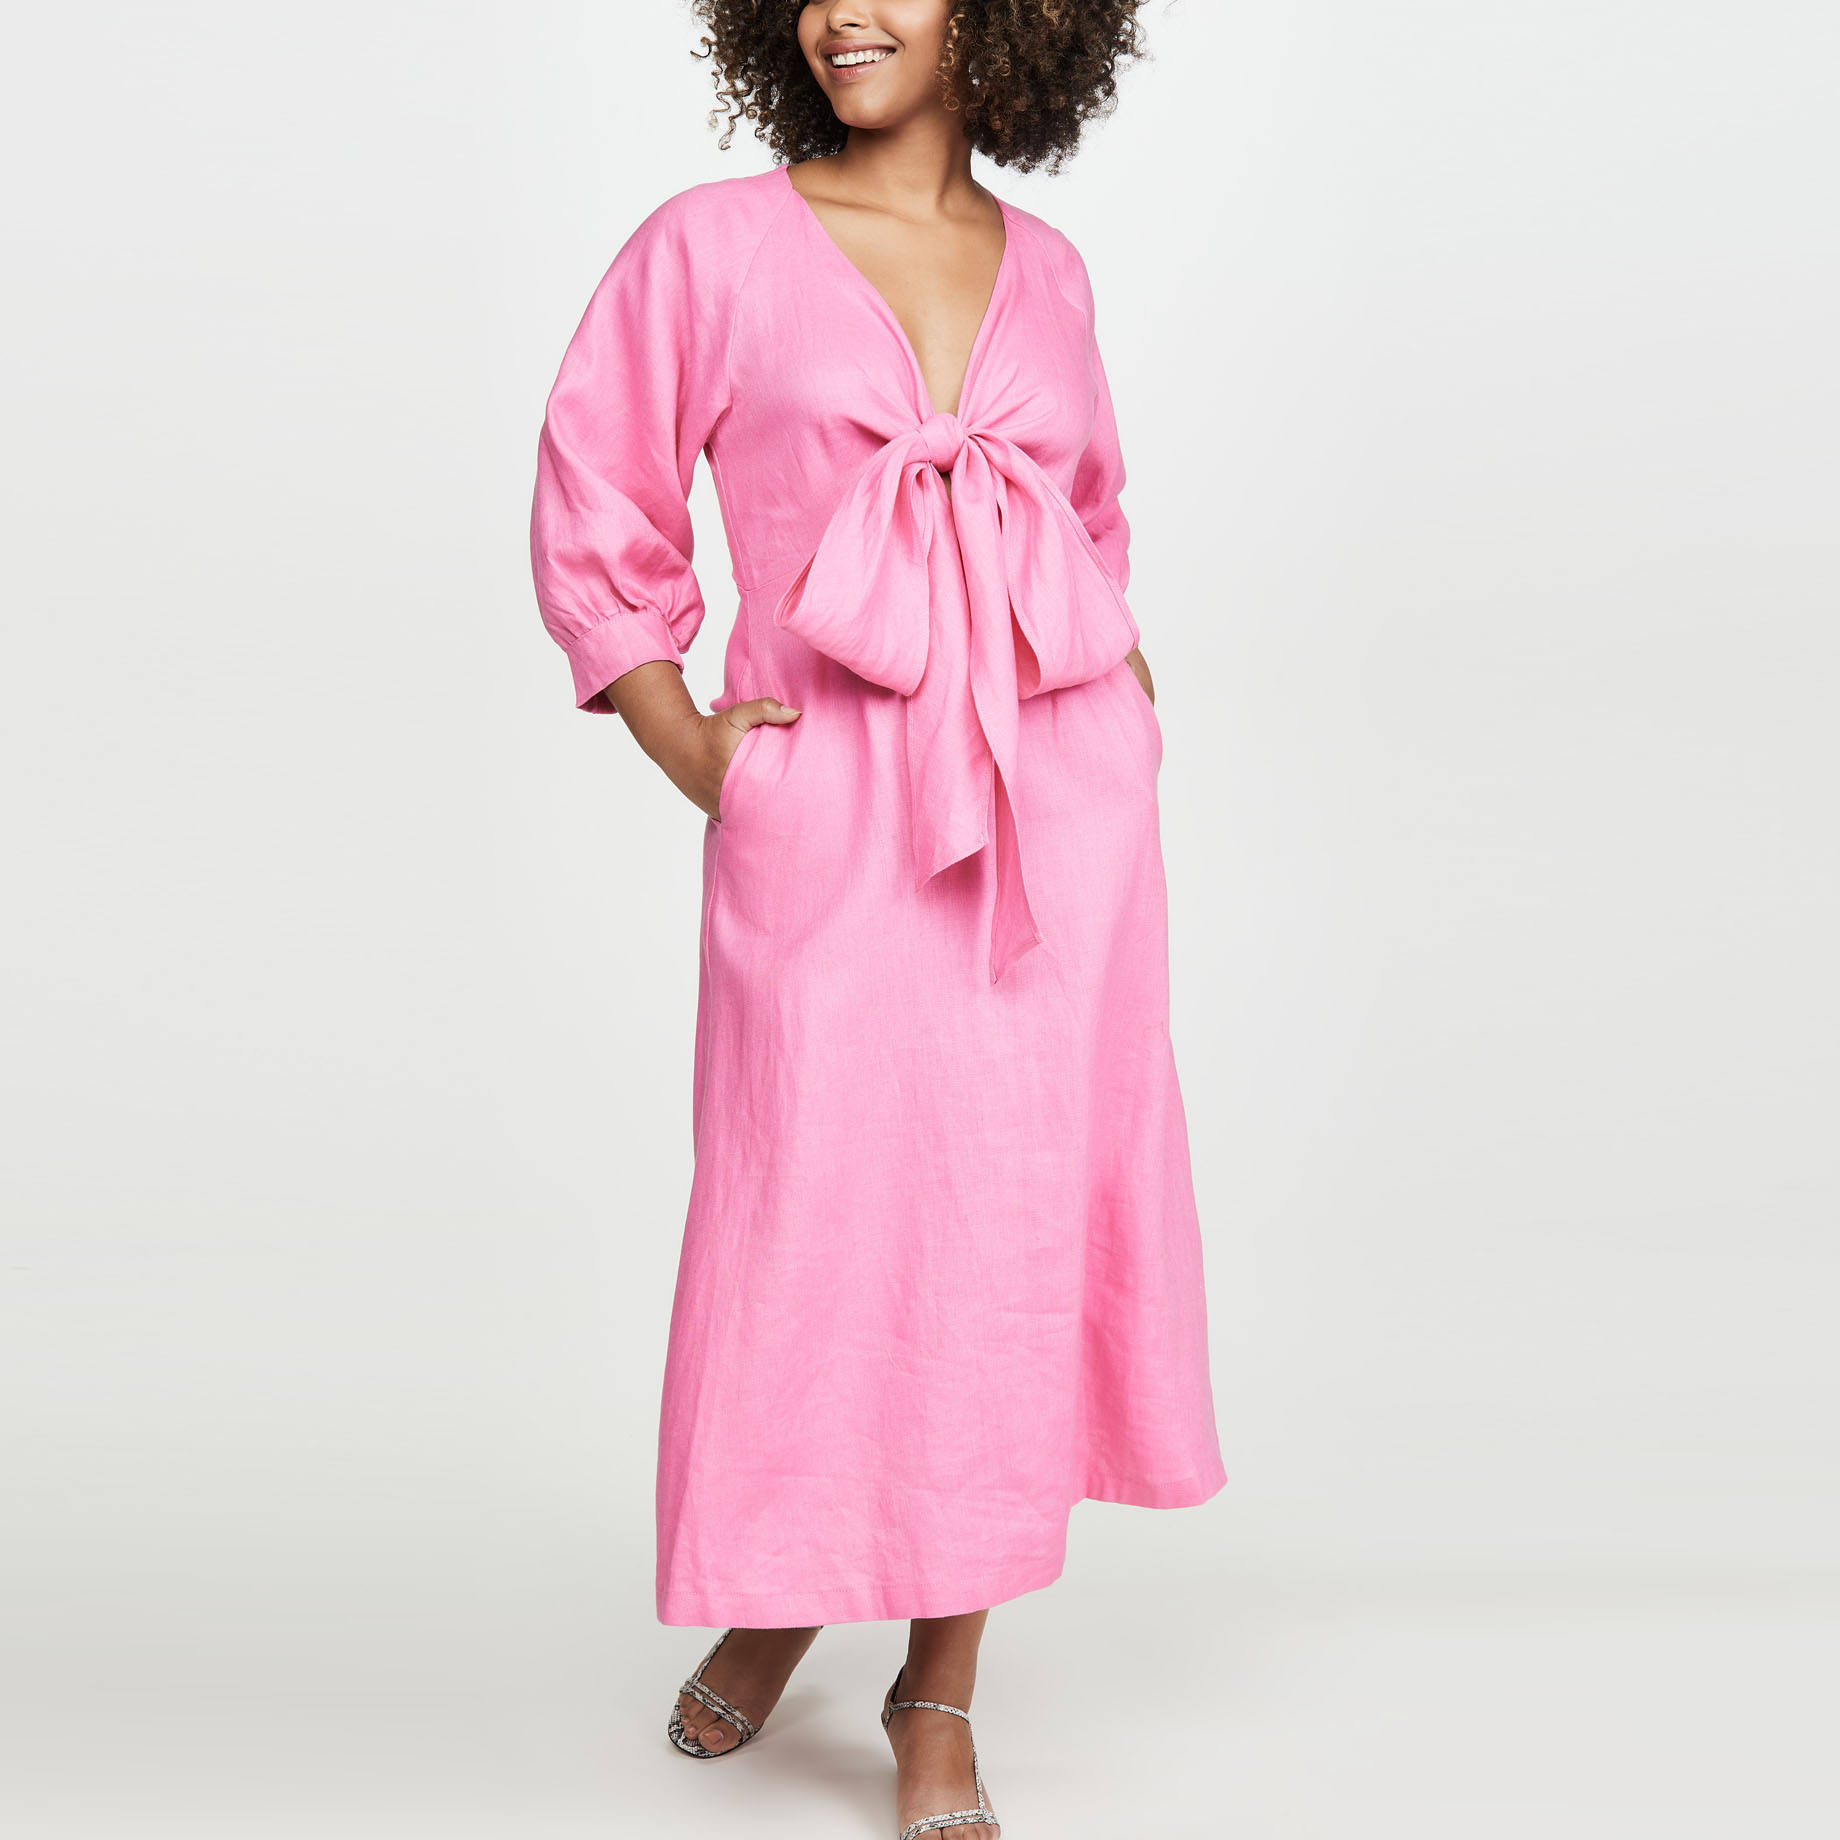 Pink Cute Linen Puff Sleeve Tie Cutout At Front Dress Ladies